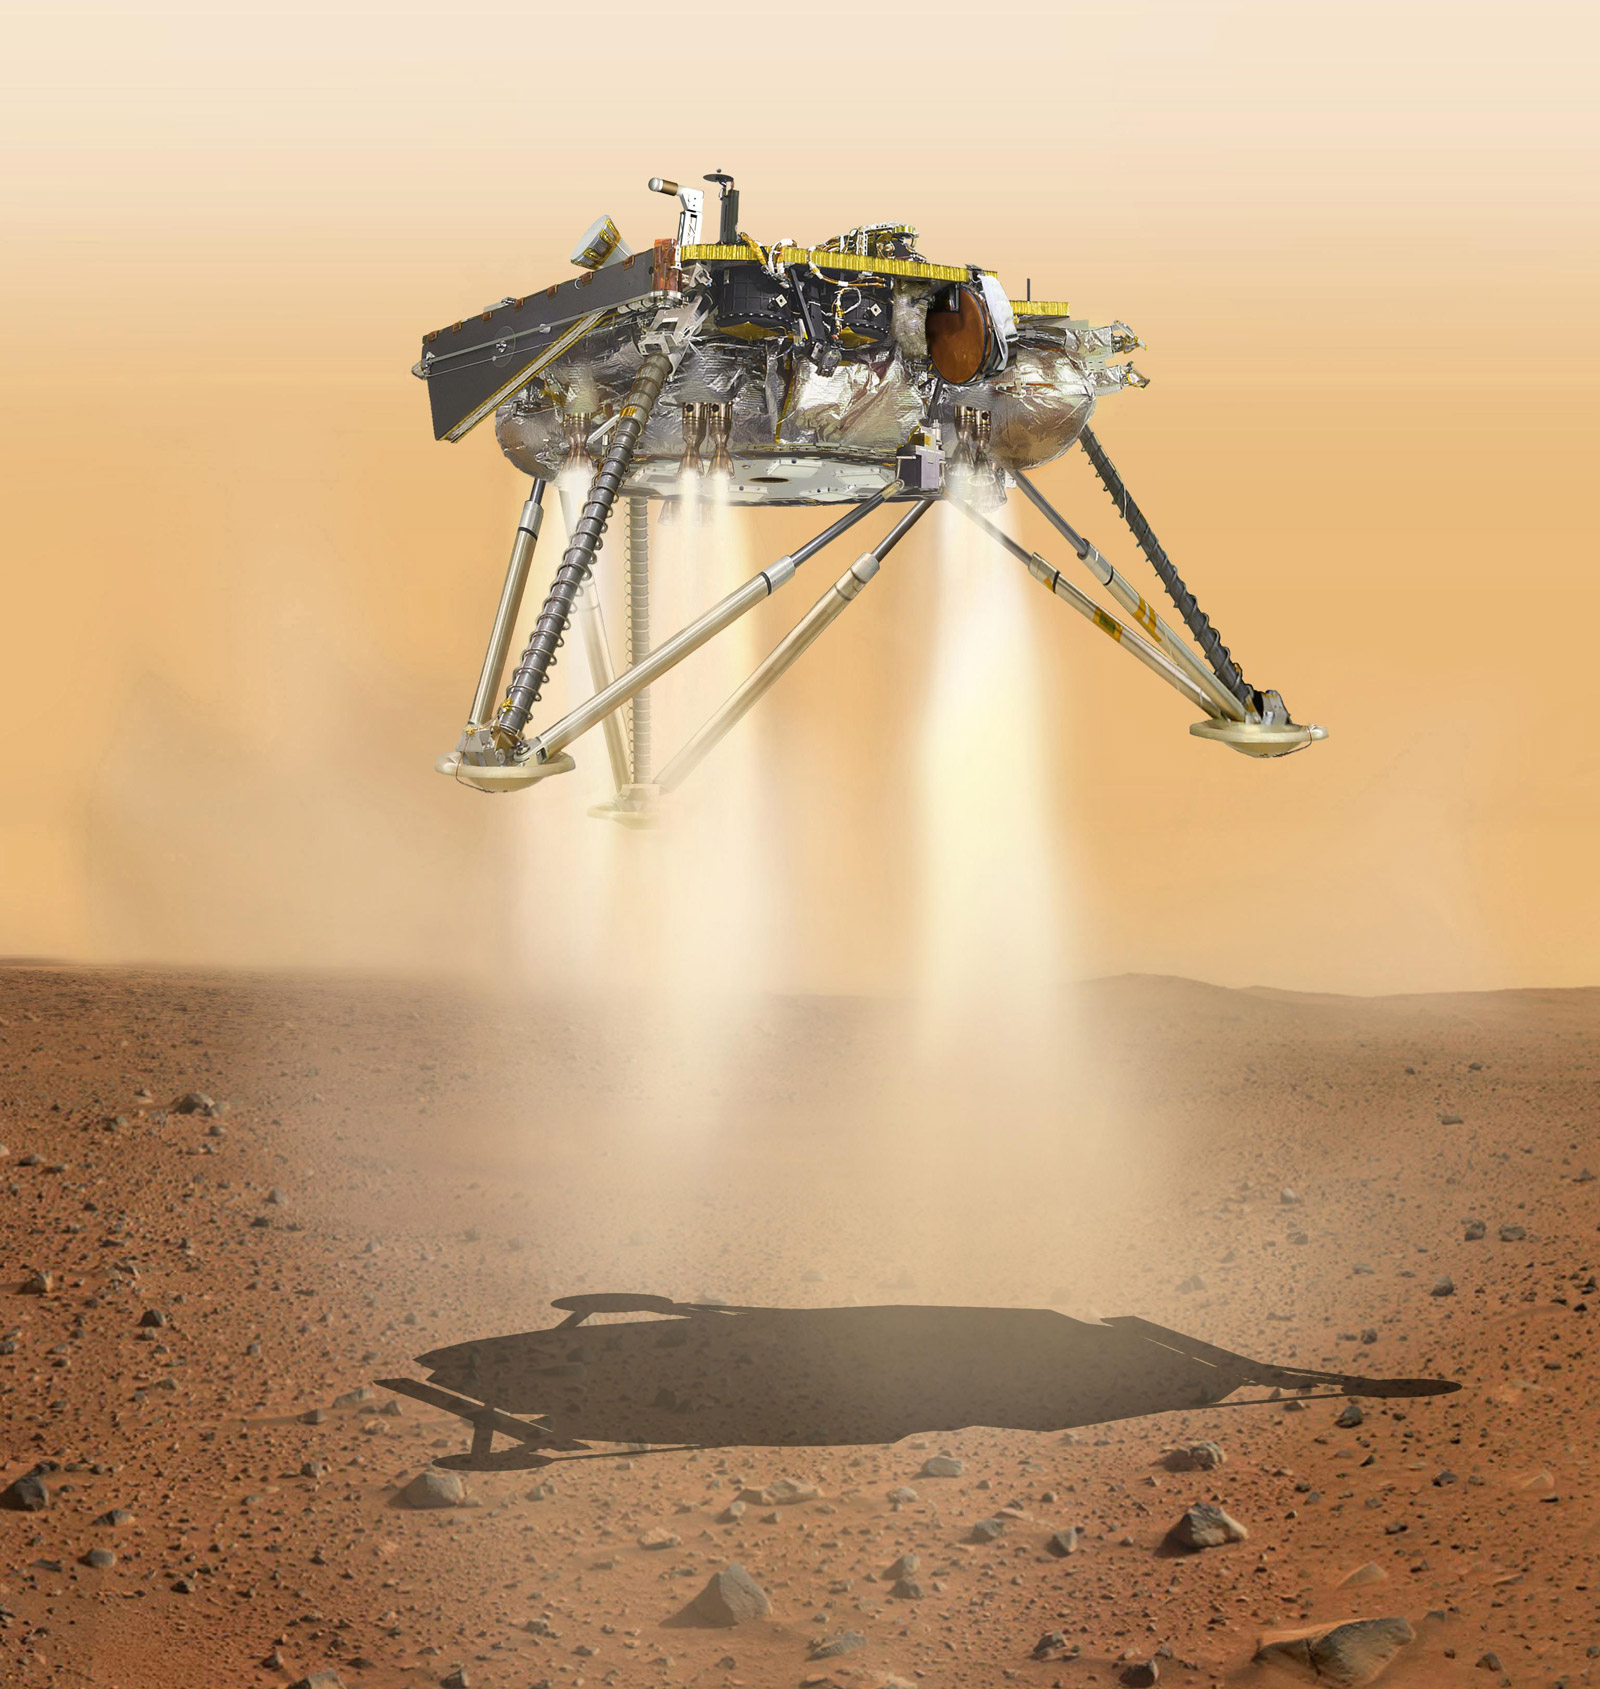 Anxiety at NASA as Mars InSight spacecraft nears Red Planet